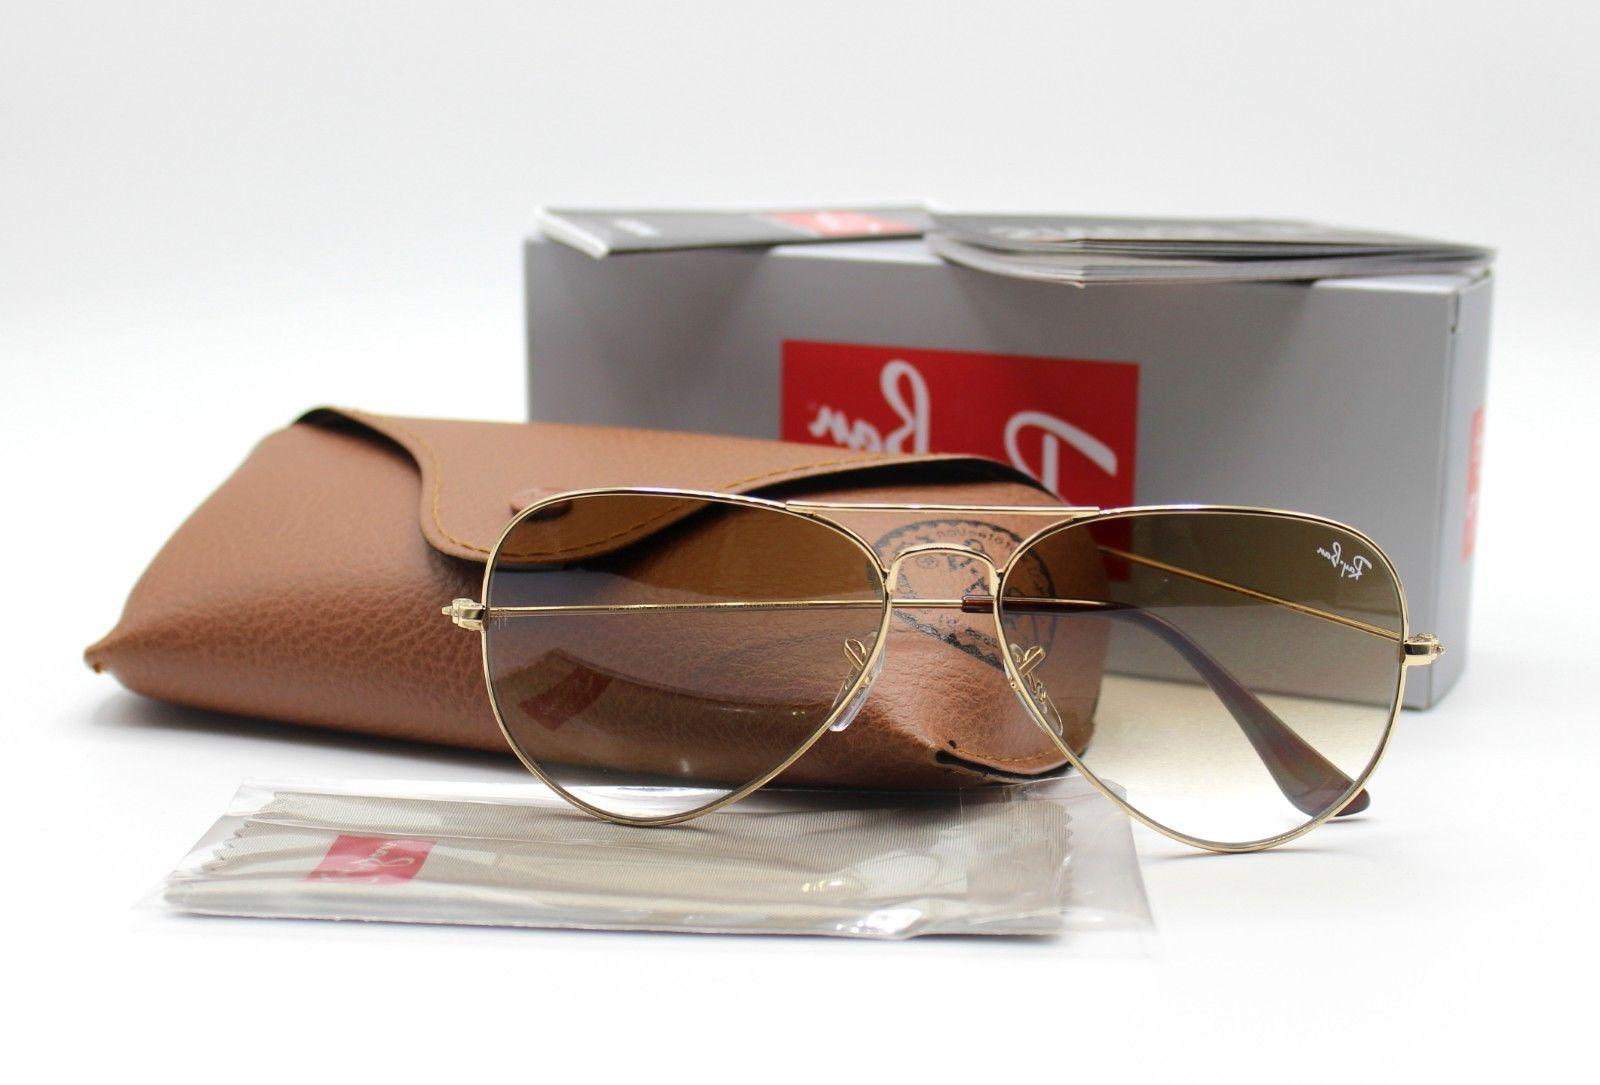 New Ray Ban Rb3025 001 51 Gold Brown Gradient Aviator Sunglasses 62 Mm Large